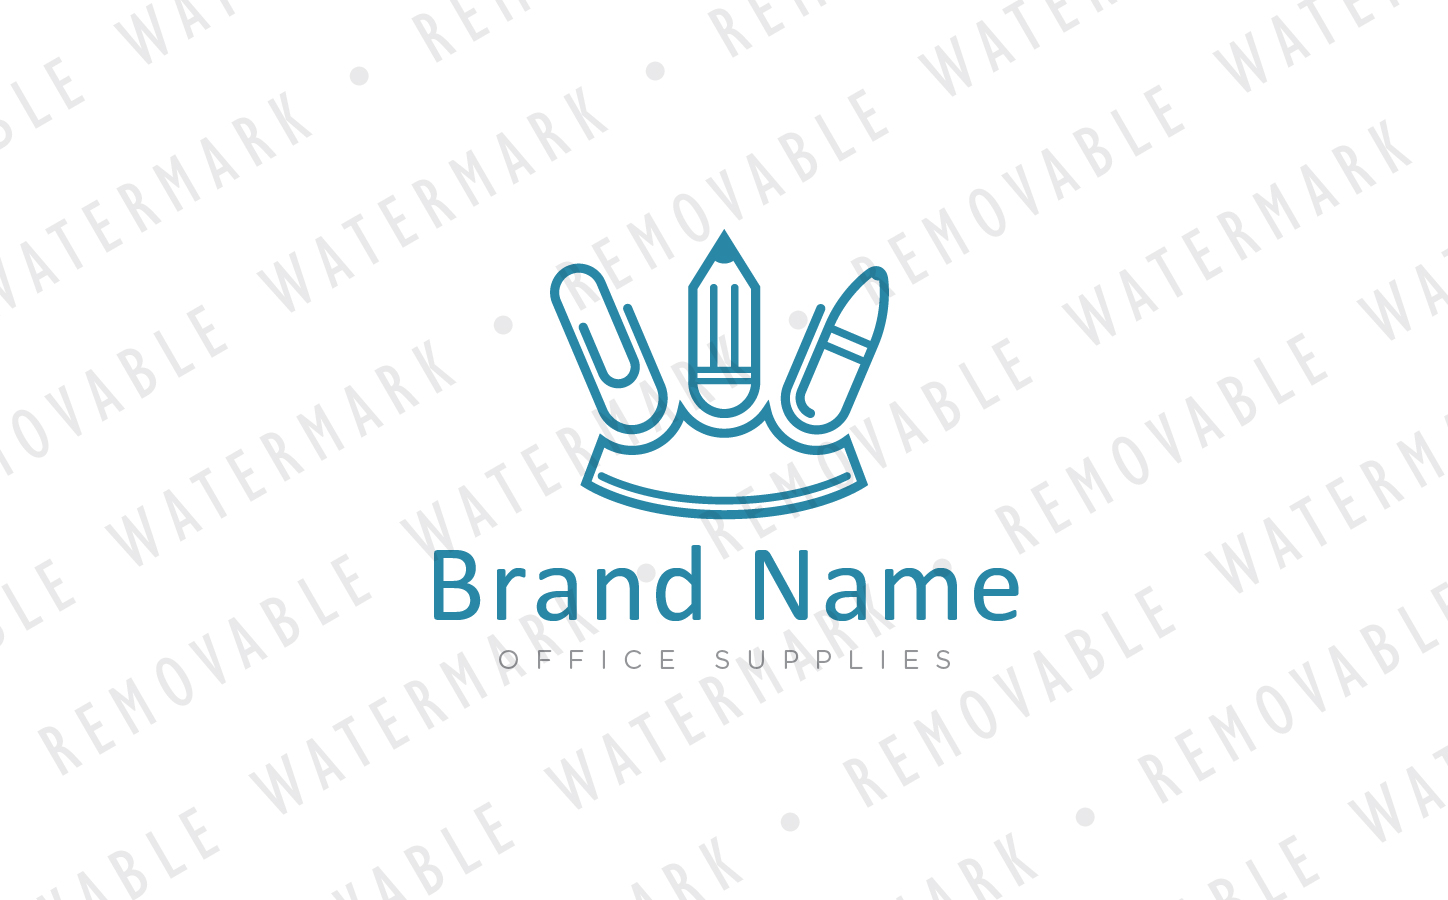 King of Office Logo Template